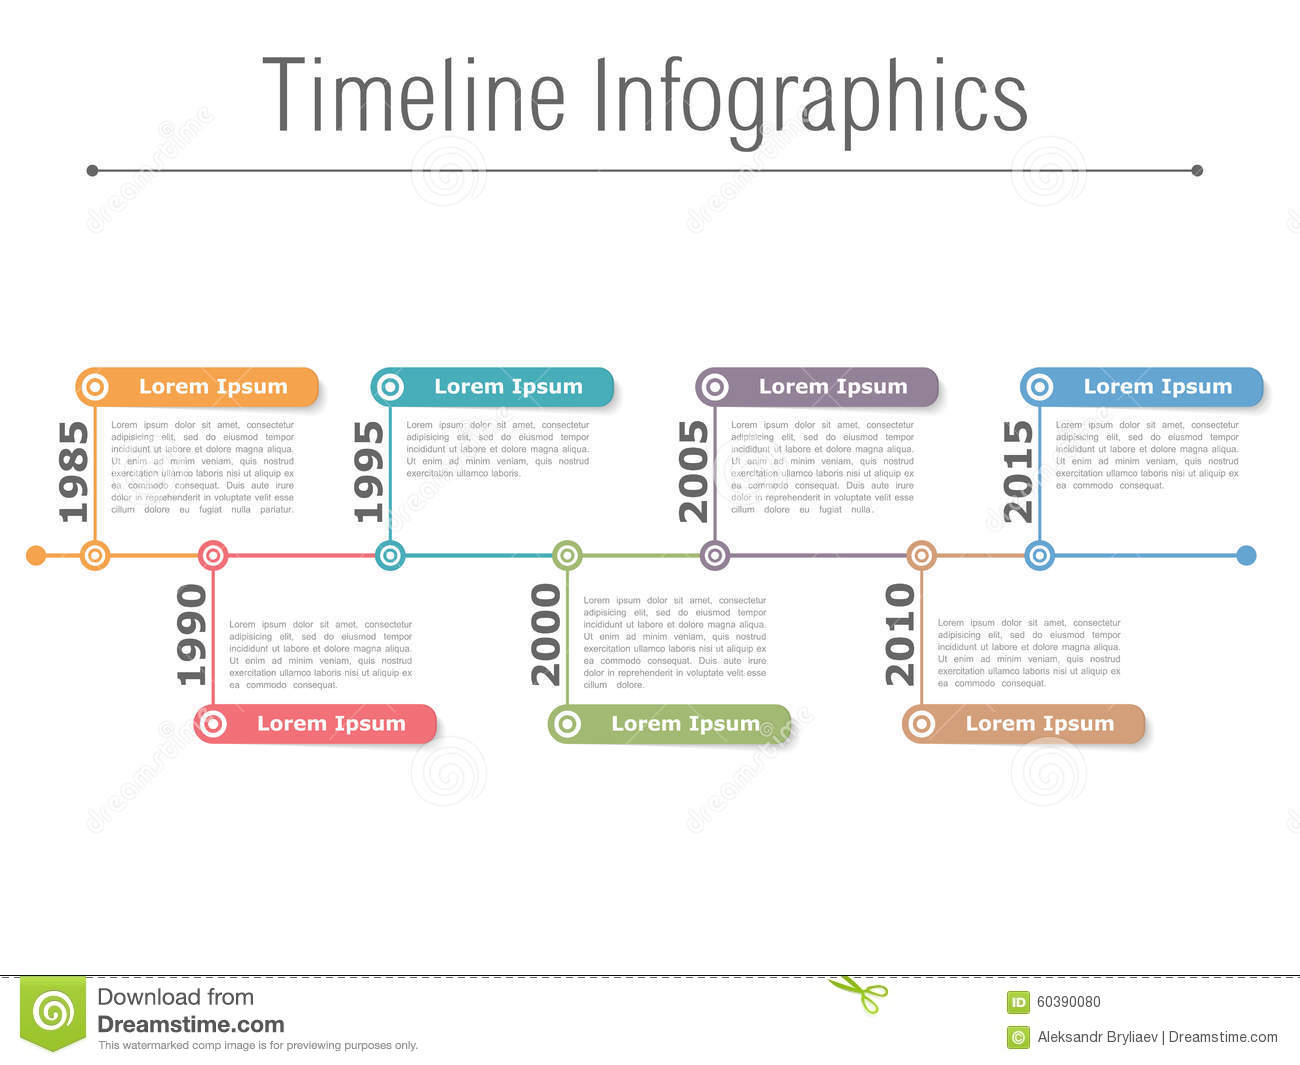 Time line of an ipo